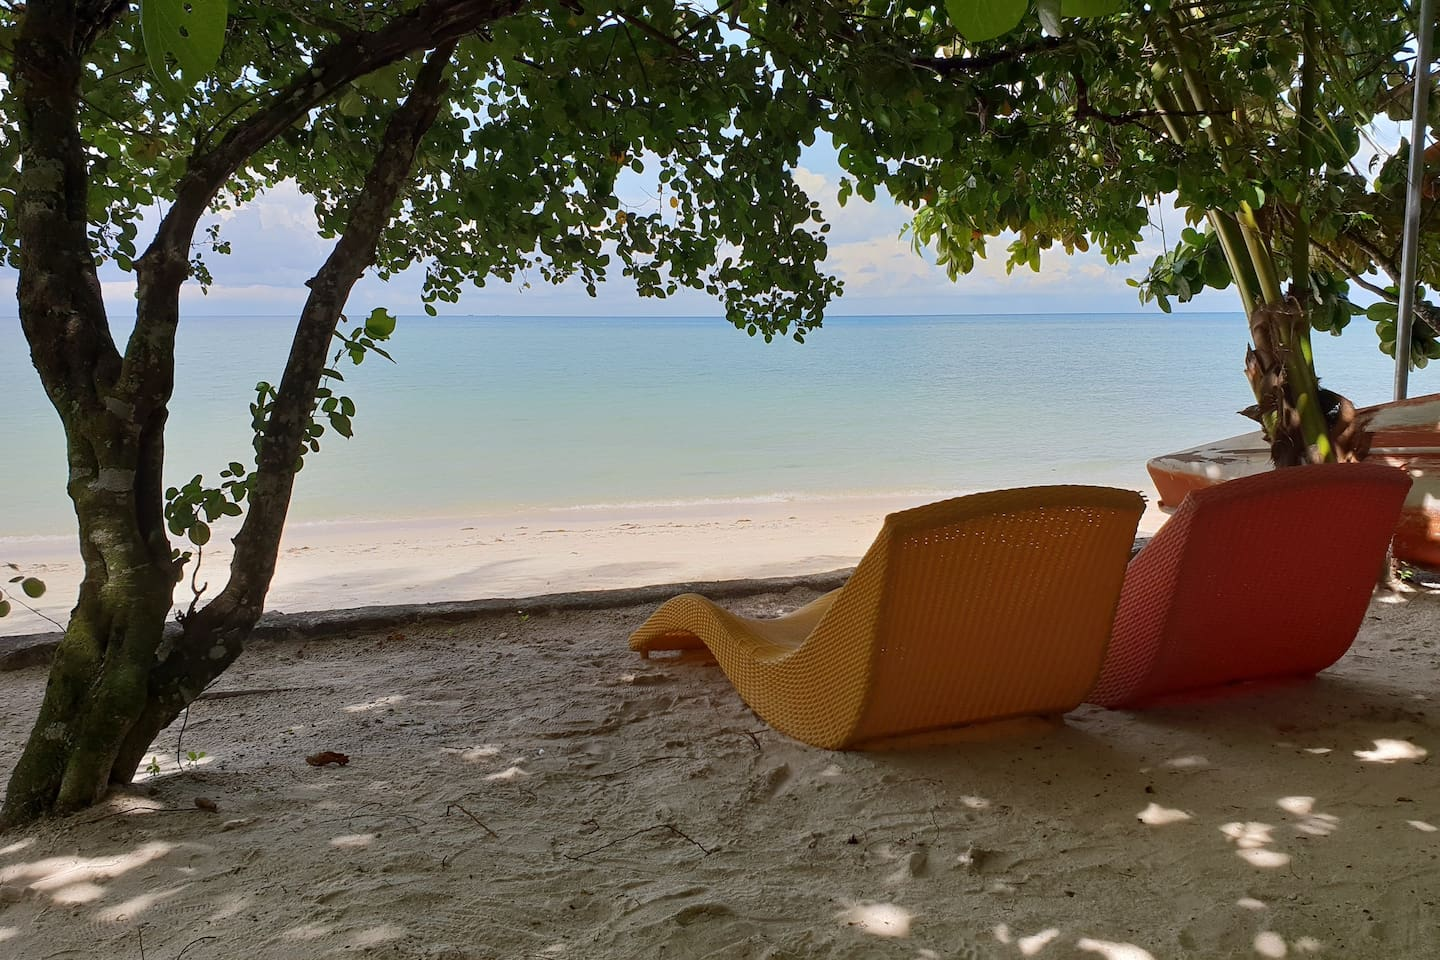 The most relaxing beach in Belitung, laying under the tree watching blue ocean in front of you